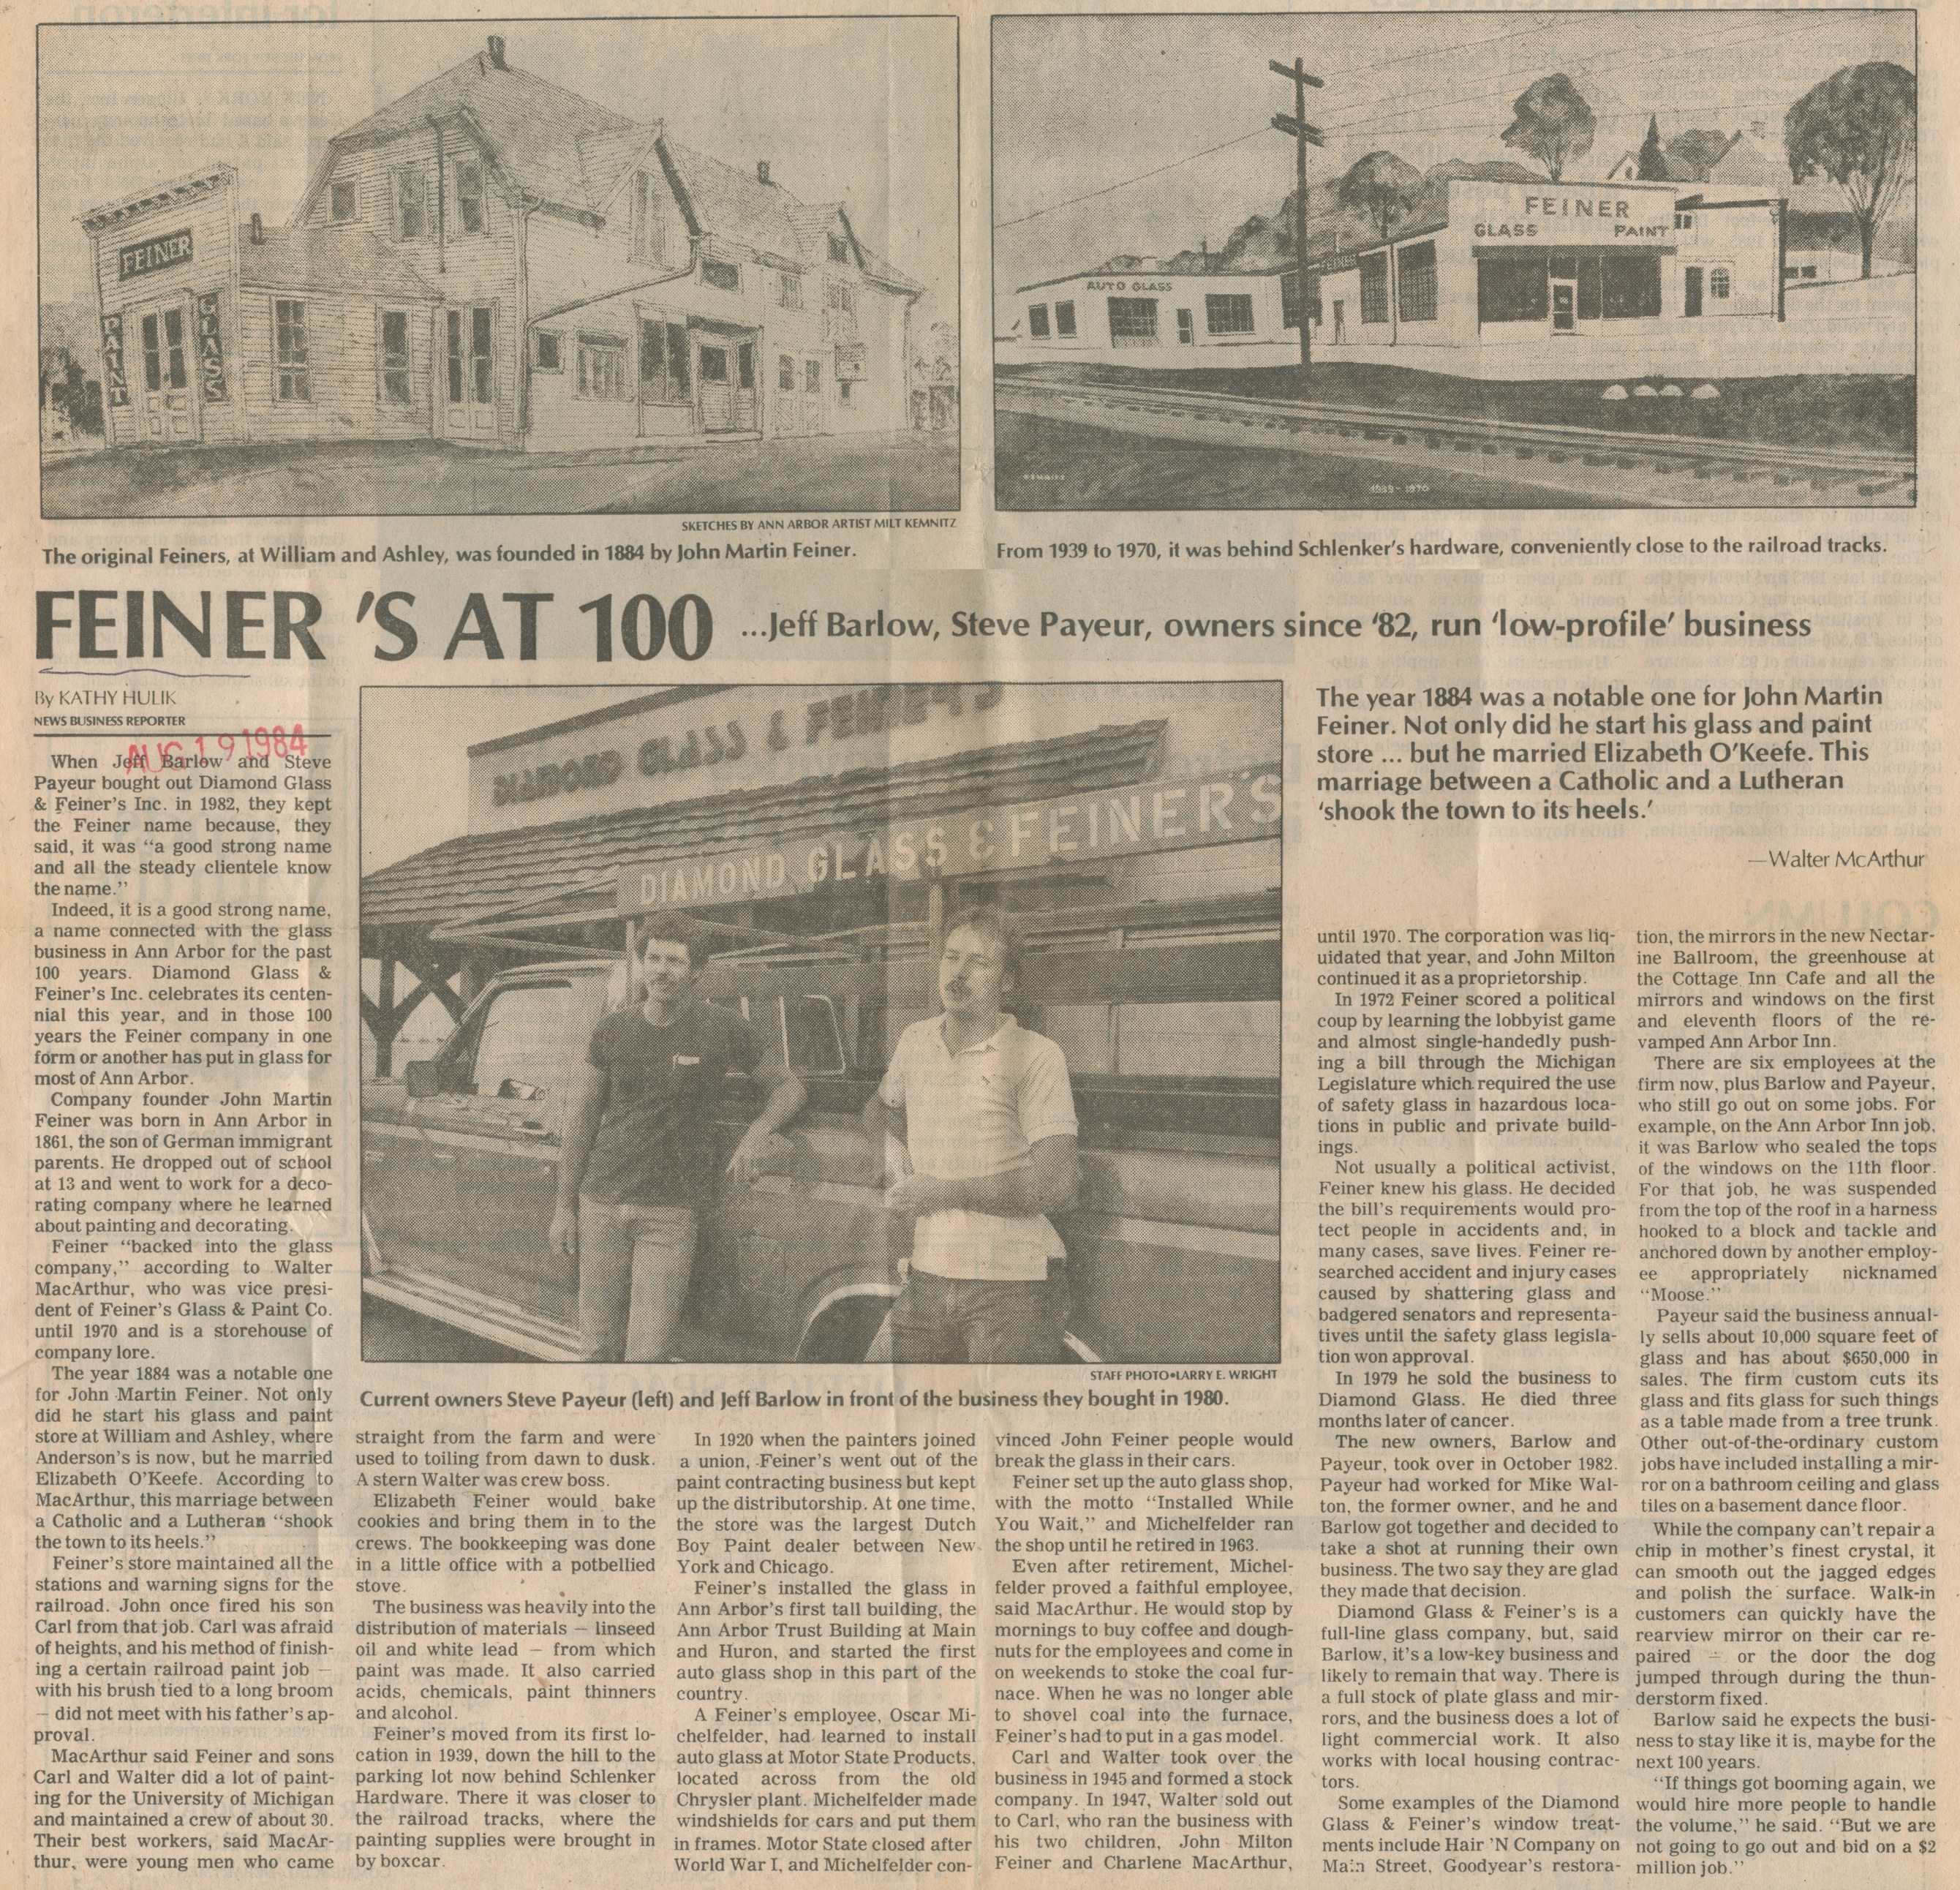 Feiner's At 100 image